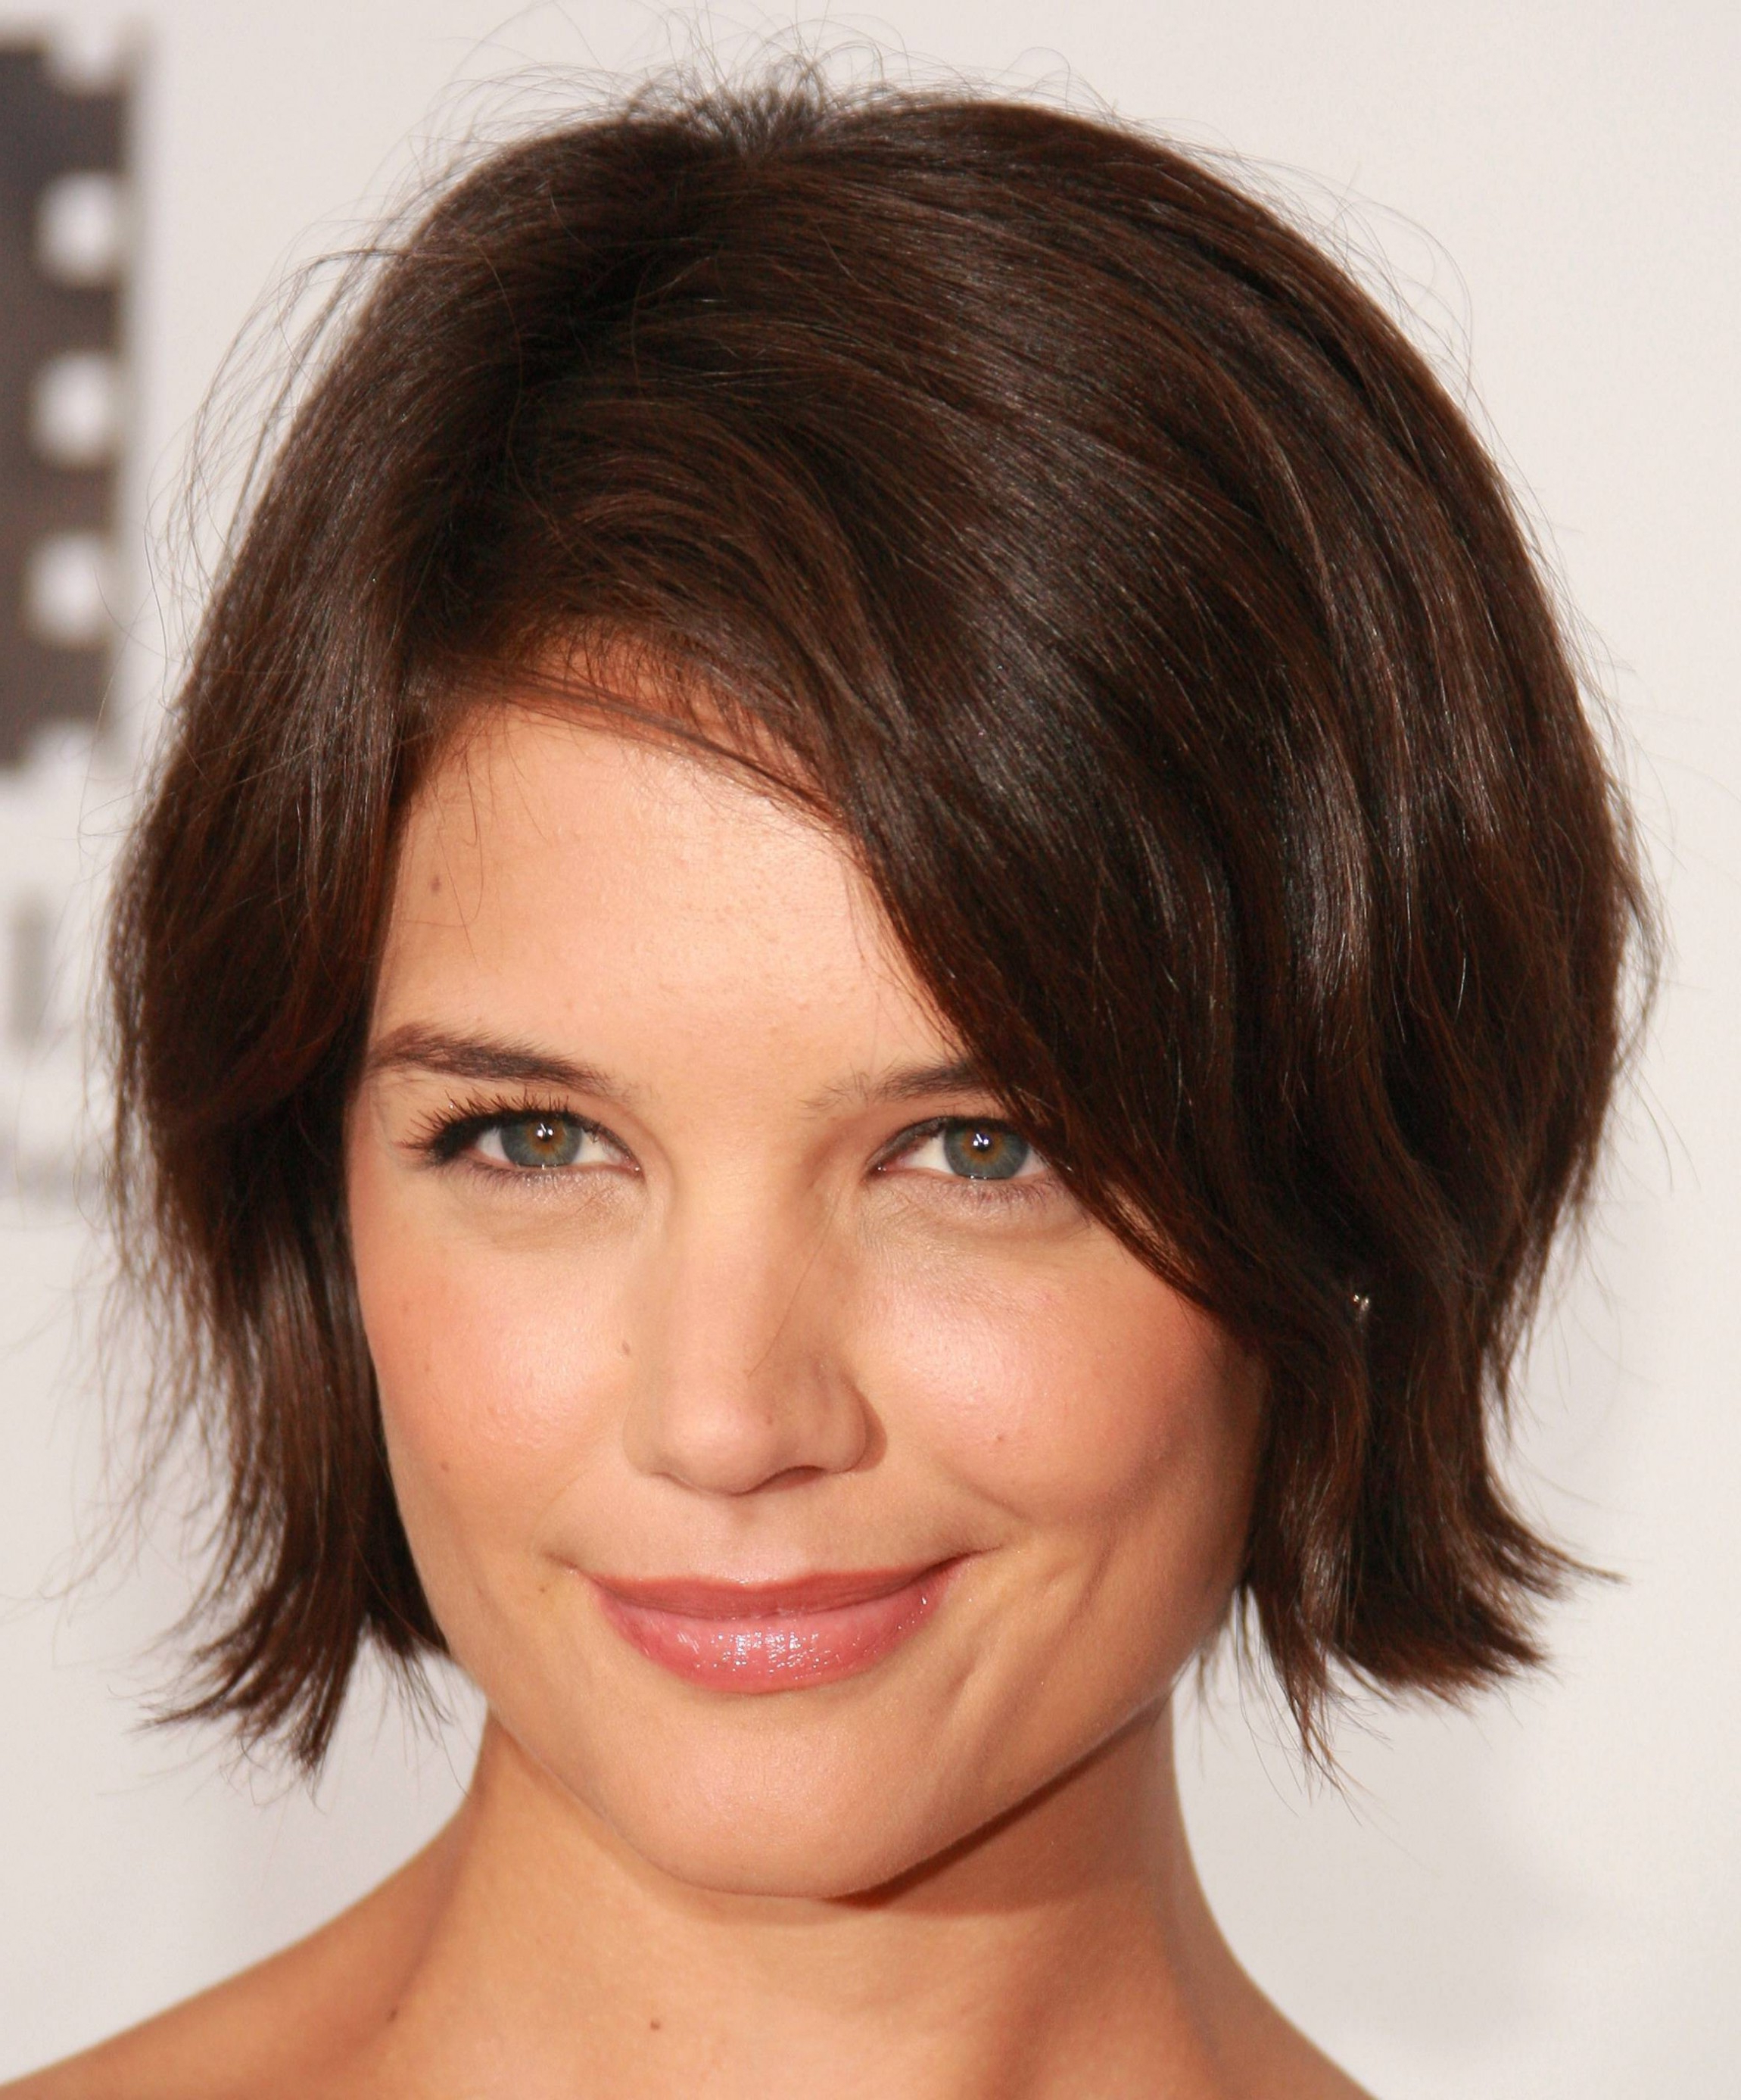 Best Short Hairstyles – Cute Hair Cut Guide For Round Face Shape Pertaining To Short Haircuts For Round Chubby Faces (View 9 of 25)